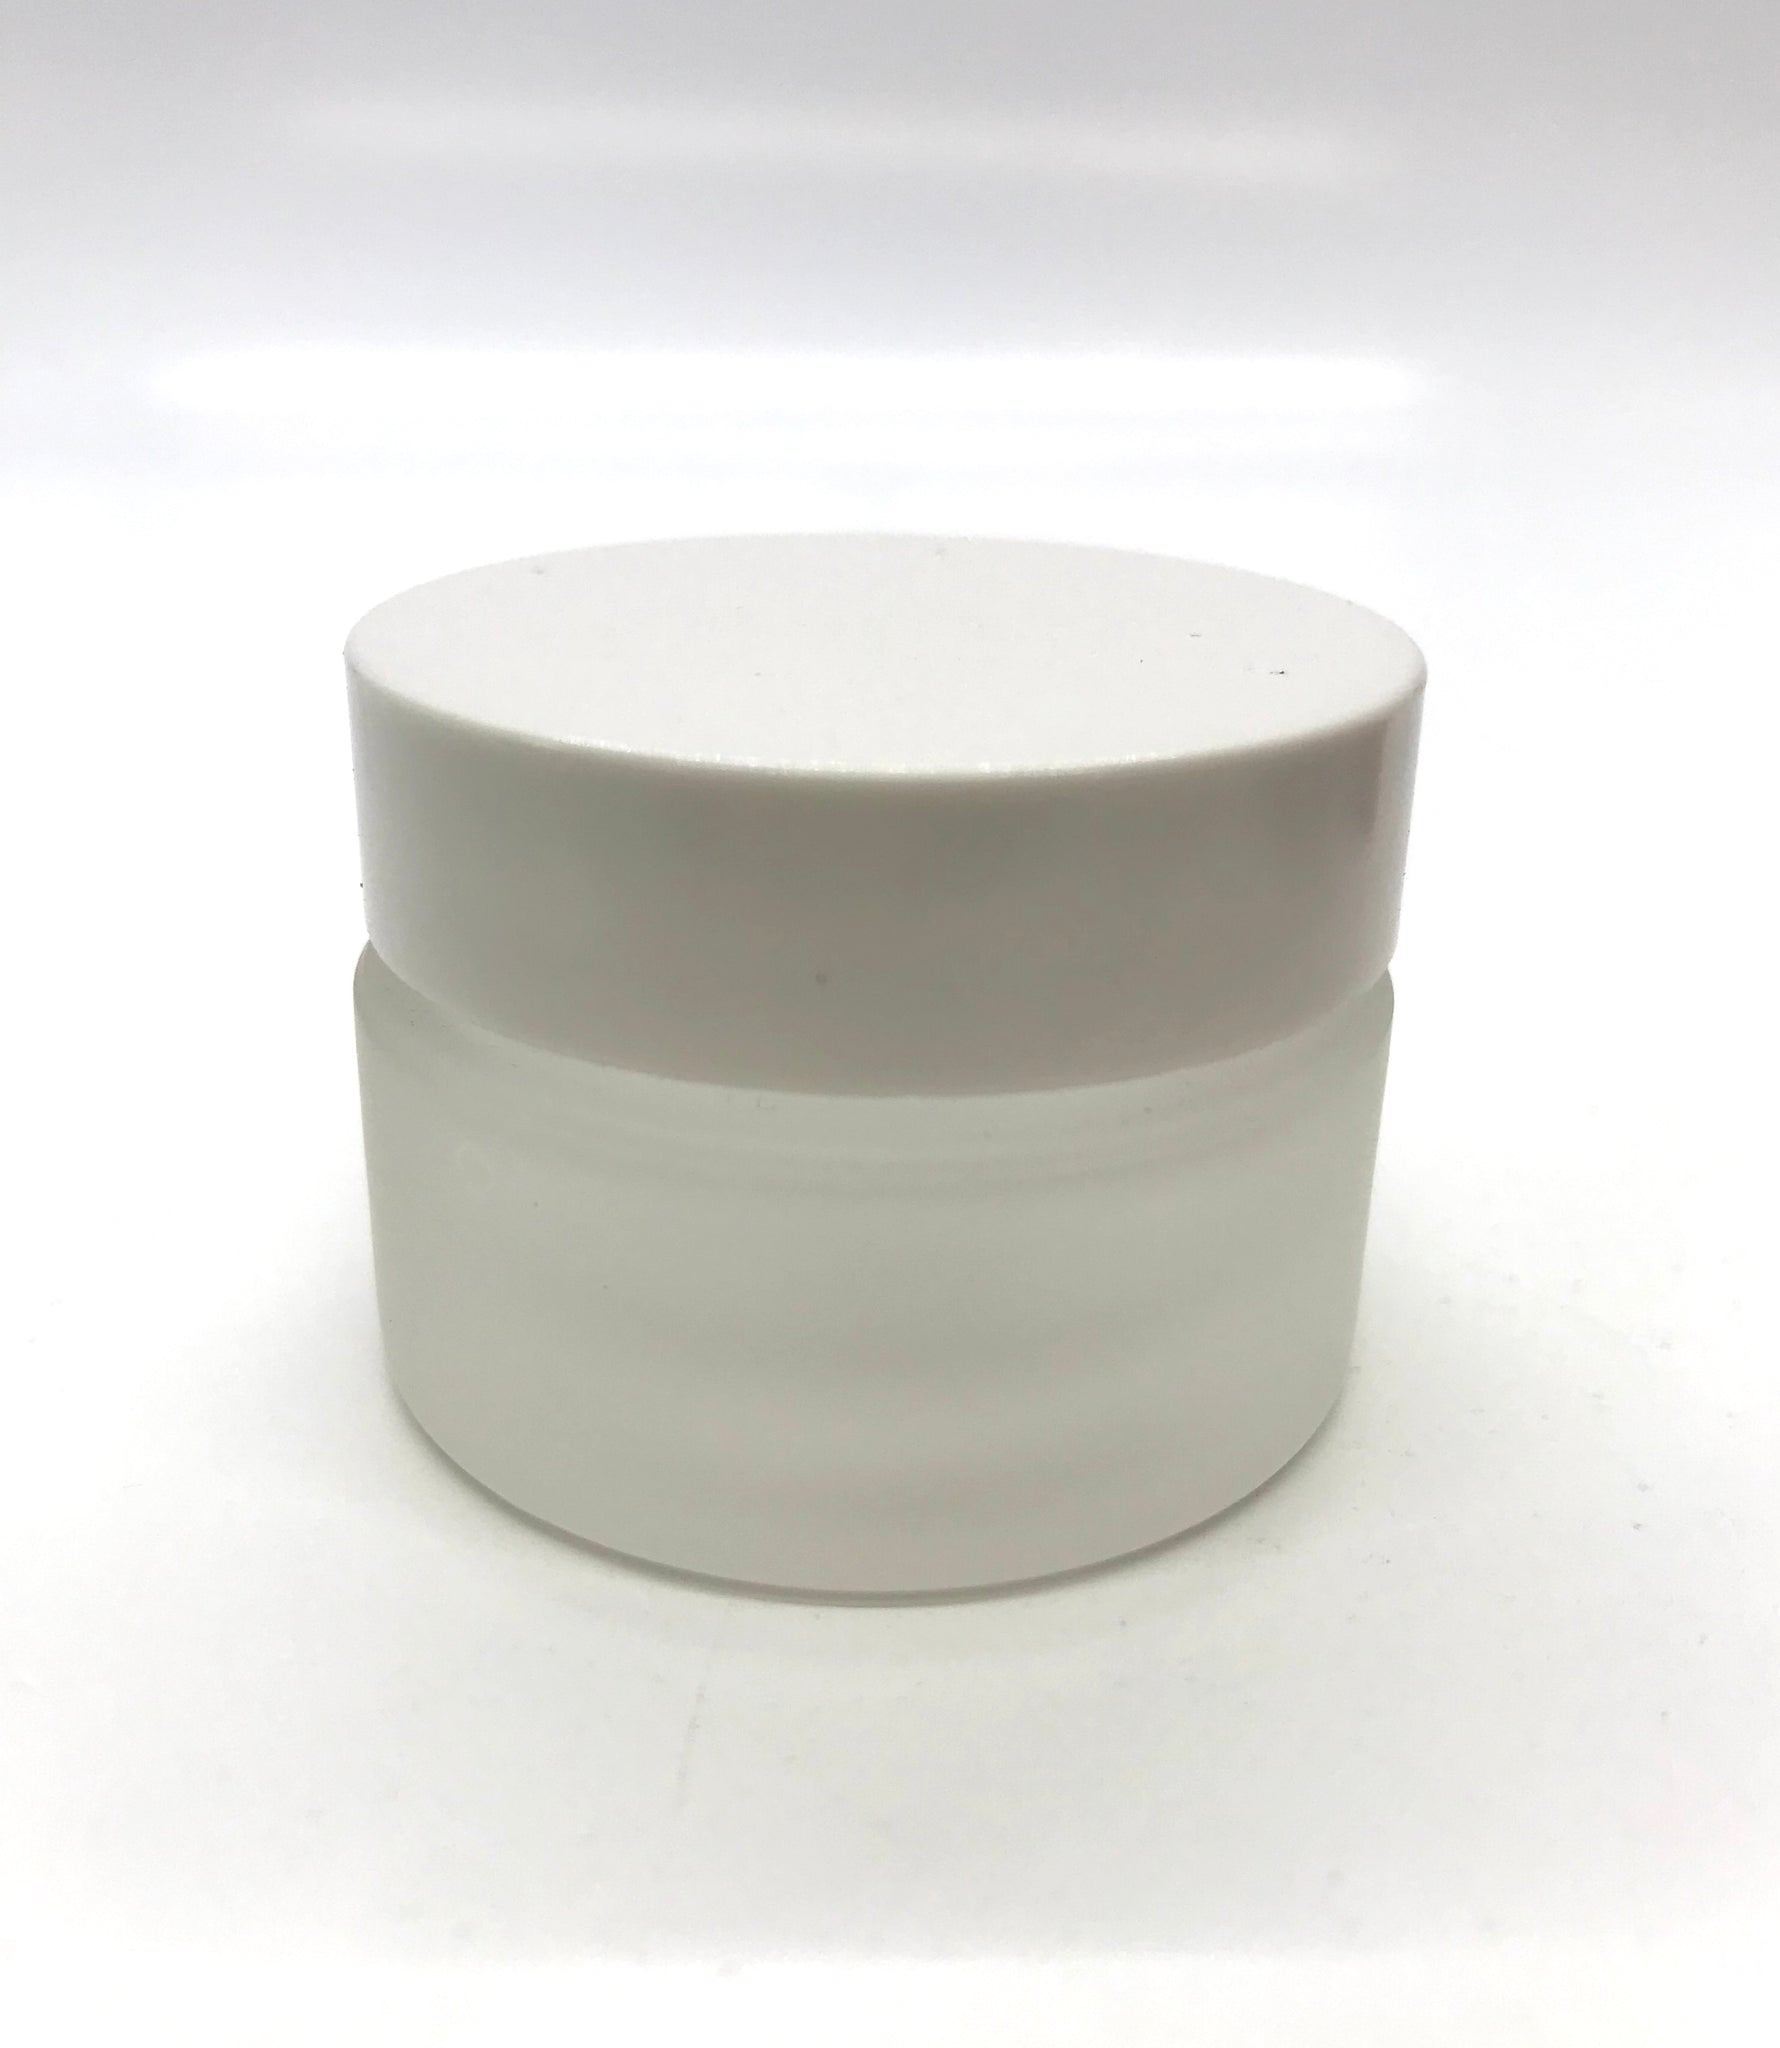 Liquid/Monomer Cup - Frosty Glass with Lid - CM Nails & Beauty Supply